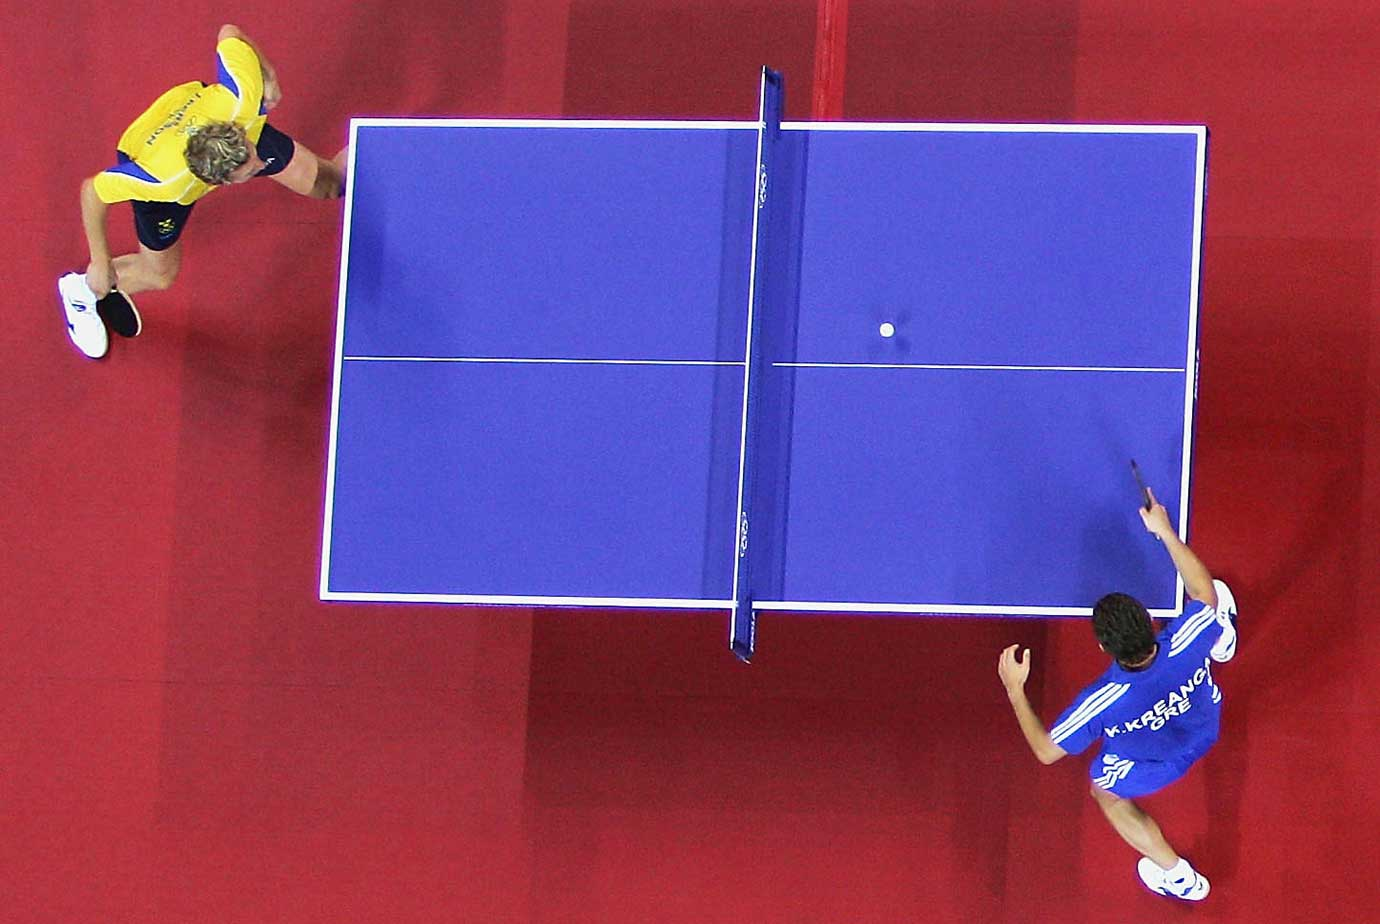 Jorgen Persson of Sweden and Kalinikos Kreanga of Greece compete in table tennis at the Athens 2004 Summer Olympic Games.